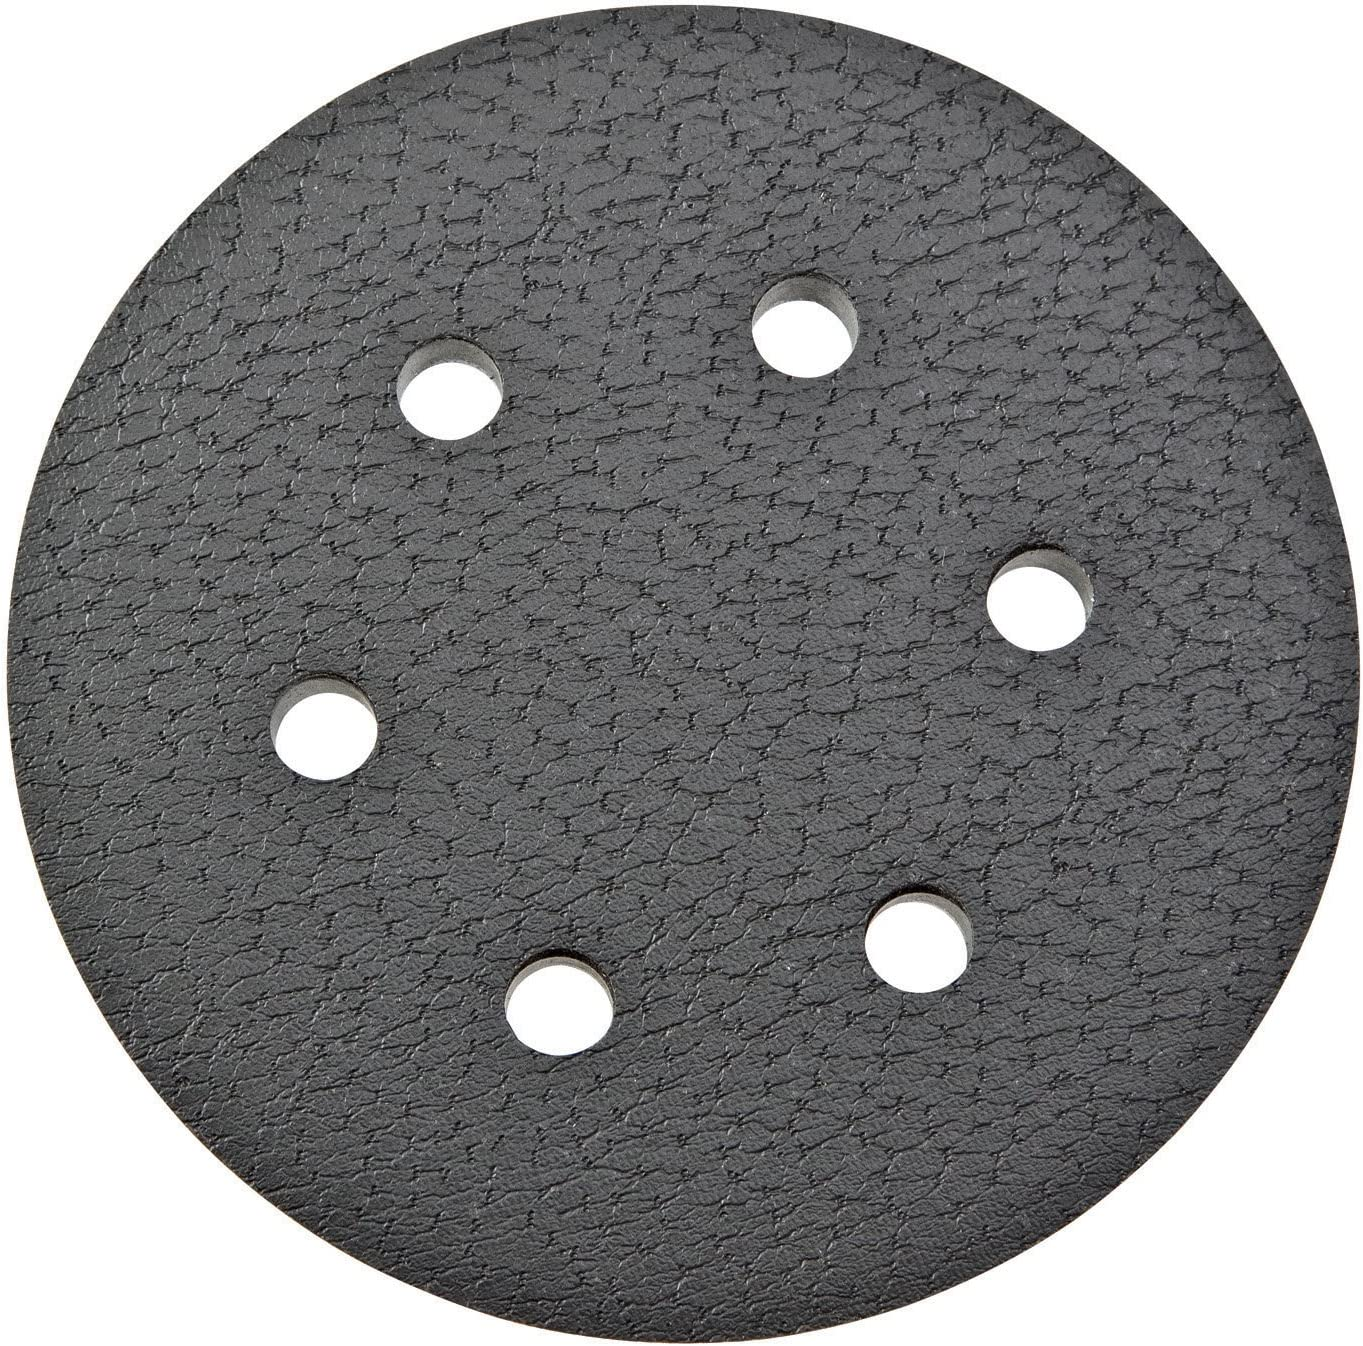 PORTER-CABLE 17000 6-Inch 6-Hole Standard Pad for 7336 and 97366 Random Orbit Sander